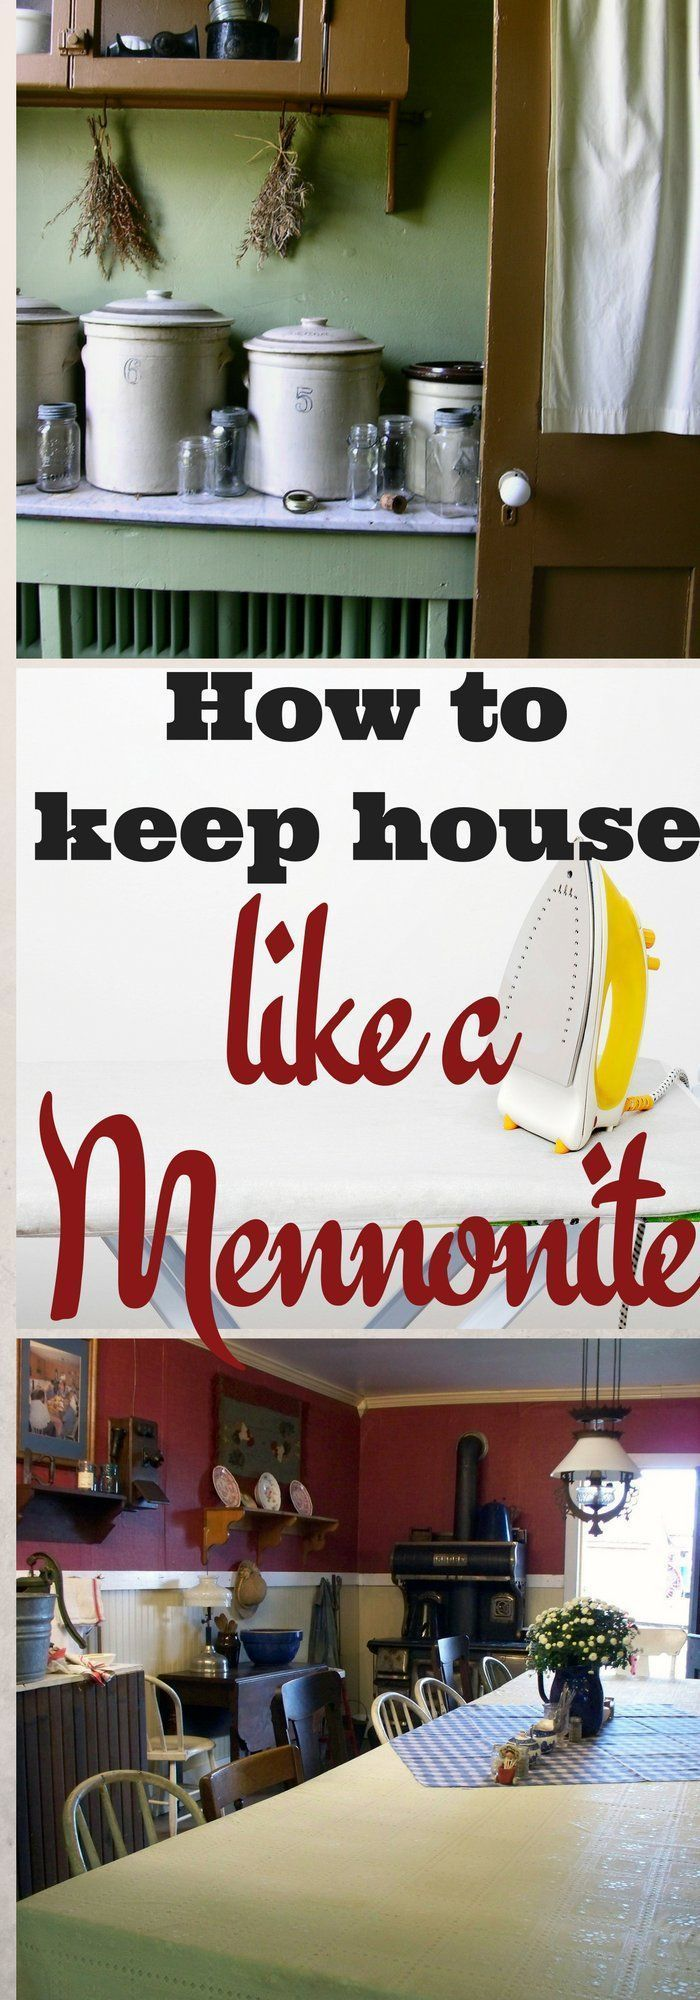 Have you ever wondered how to keep house like a Mennonite? There's no need to live like the Amish or commit to plain living. Here are lessons from my Mennonite homemaker friends.